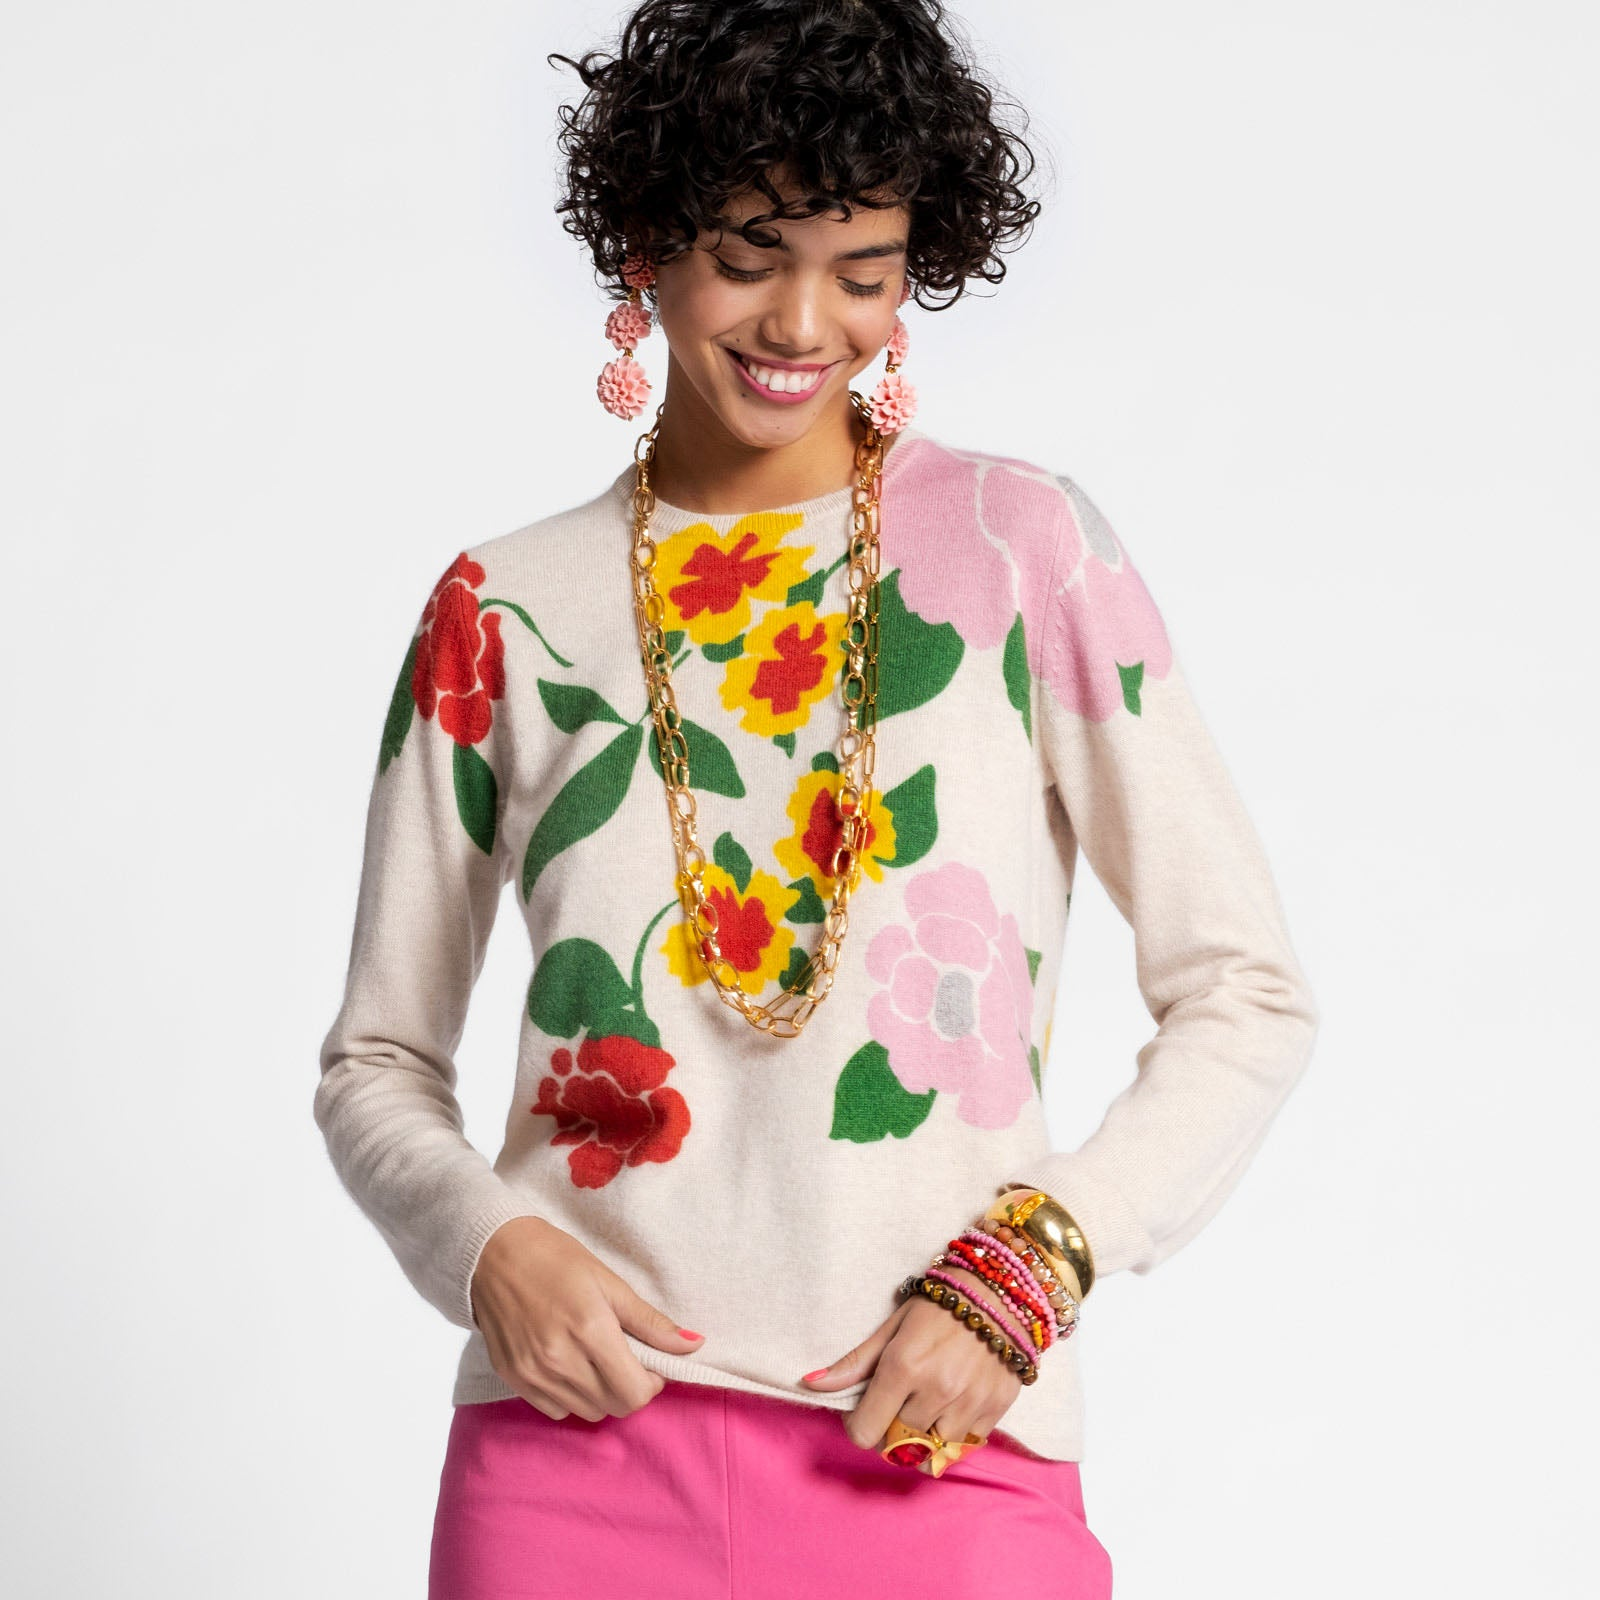 Honey Sweater Floral Garland - Frances Valentine